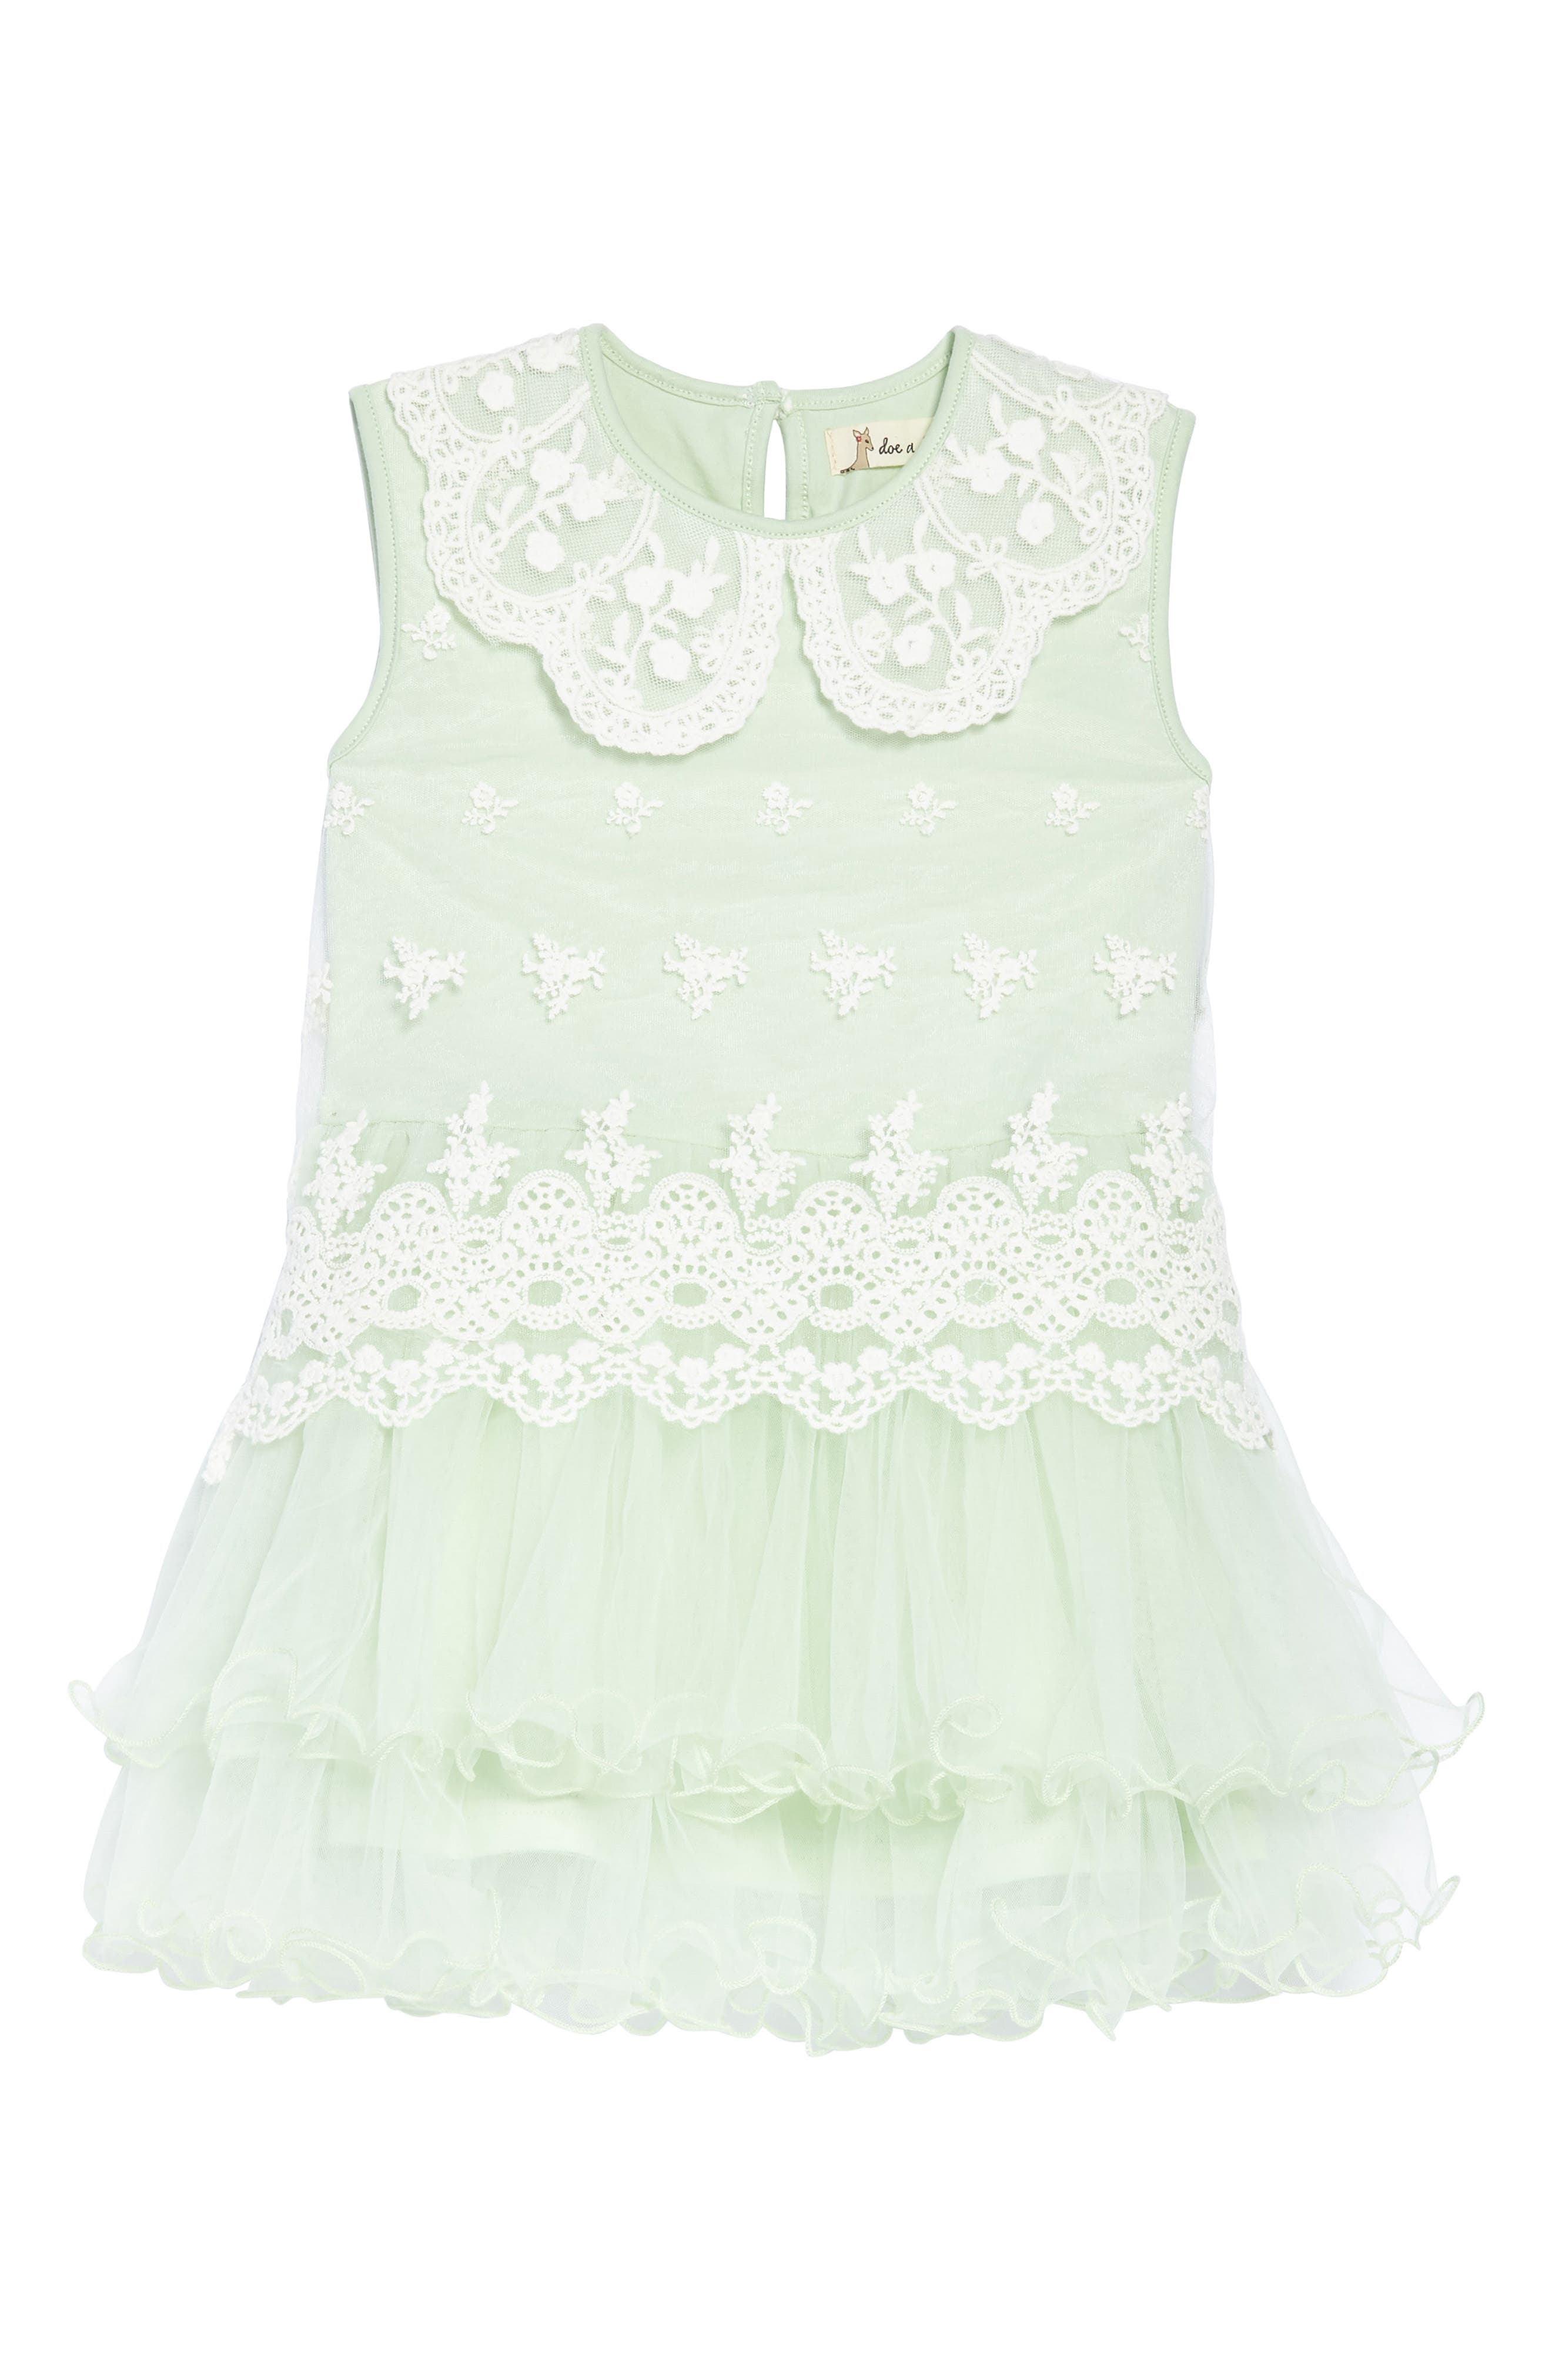 Embroidered Tulle Dress,                             Main thumbnail 1, color,                             Mint